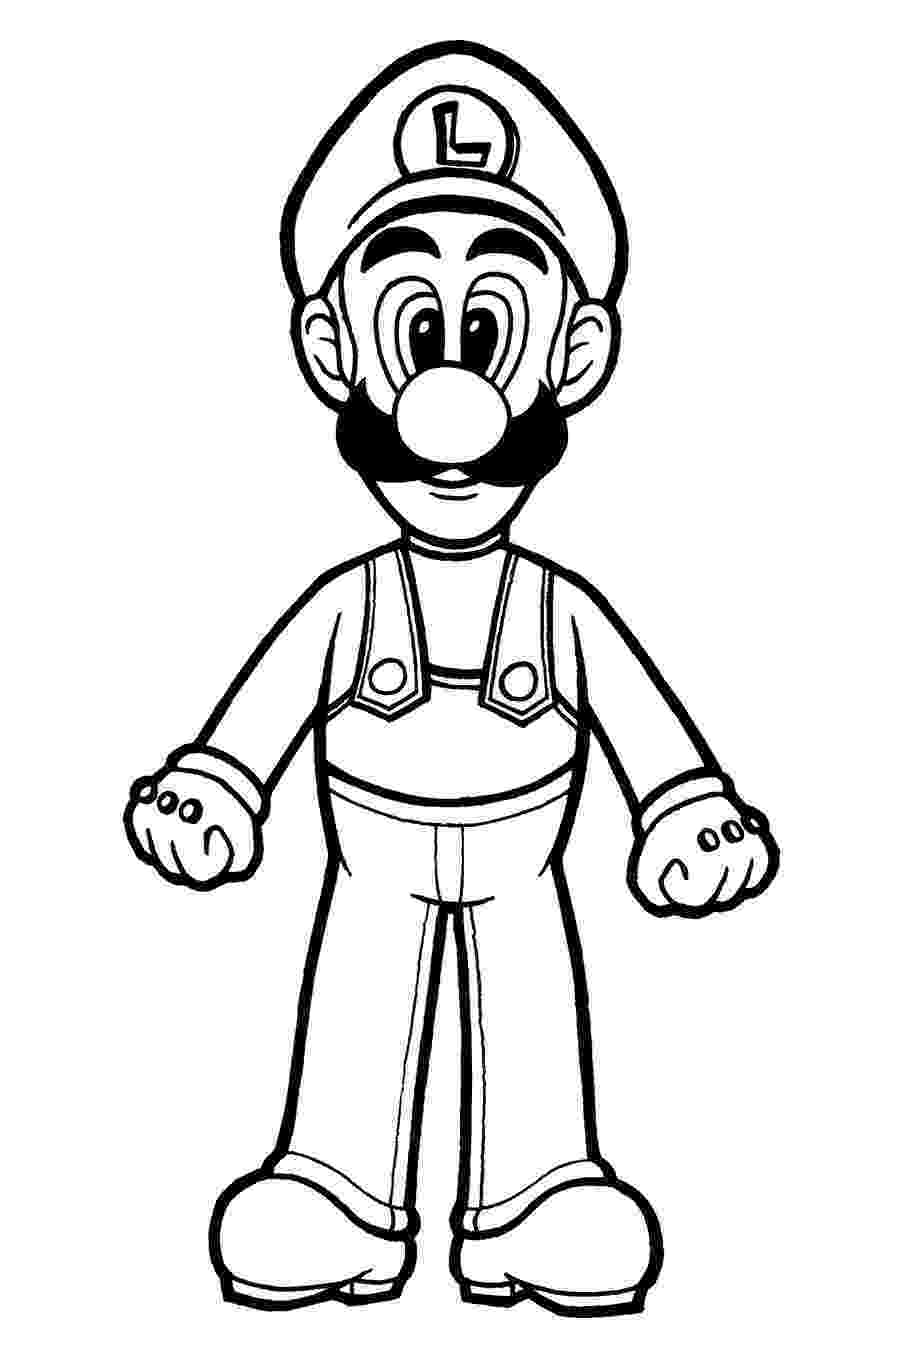 print mario mario kart coloring pages best coloring pages for kids print mario 1 1